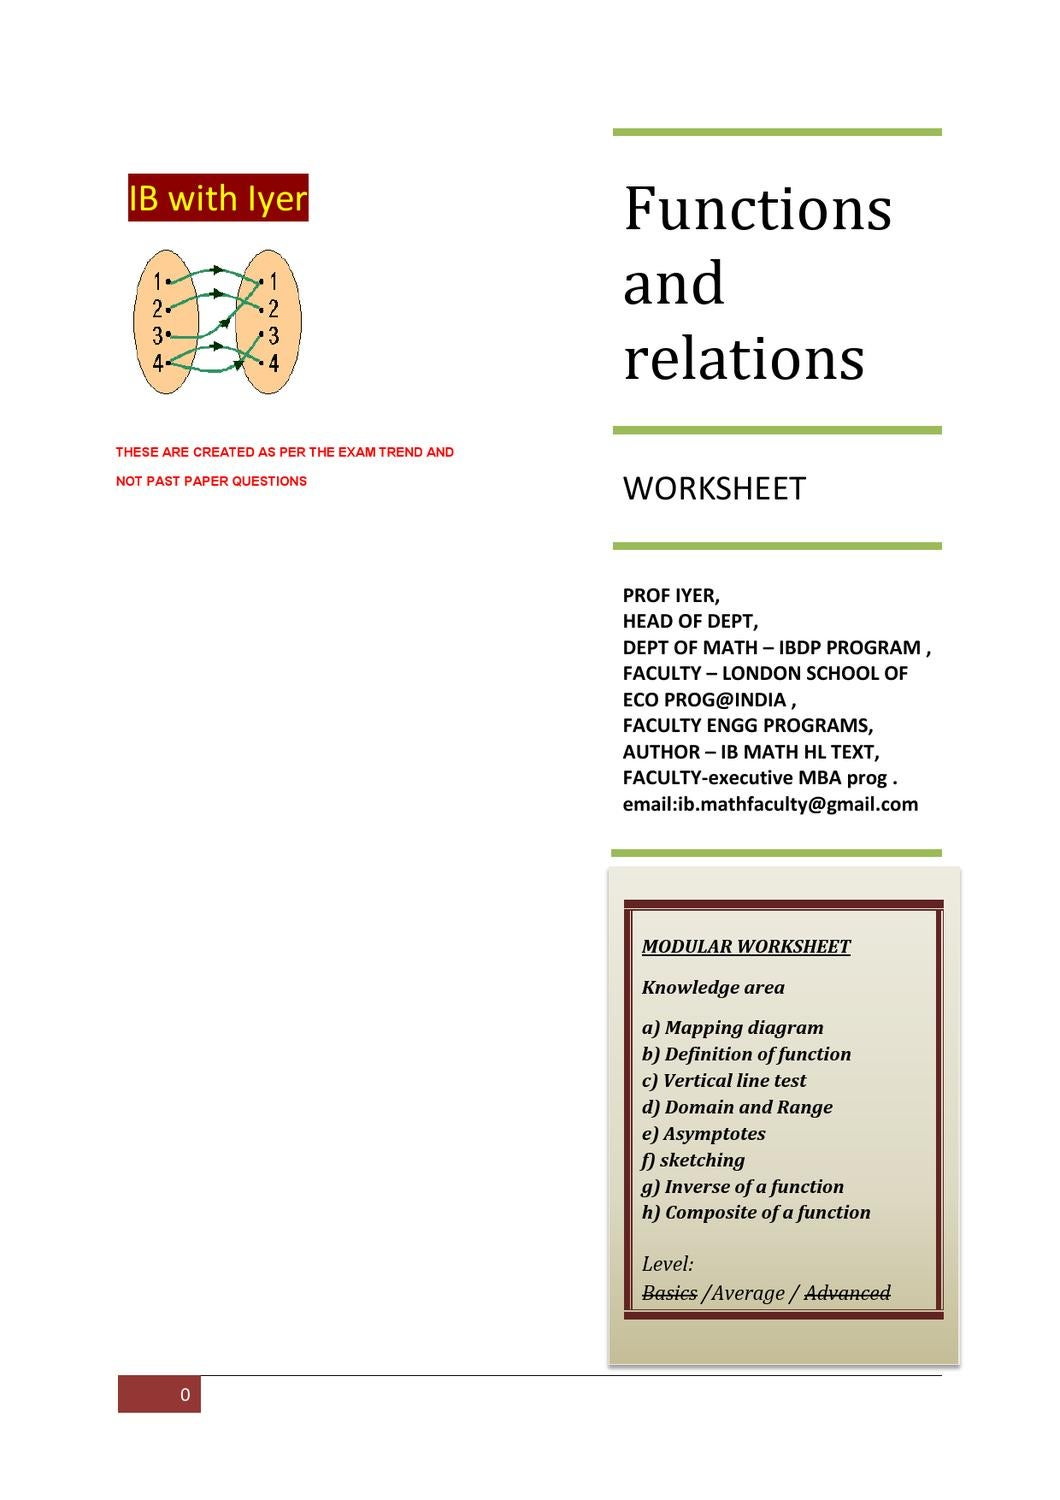 Functions And Relations Modular Ws By Prof Sriraman Iyer Issuu